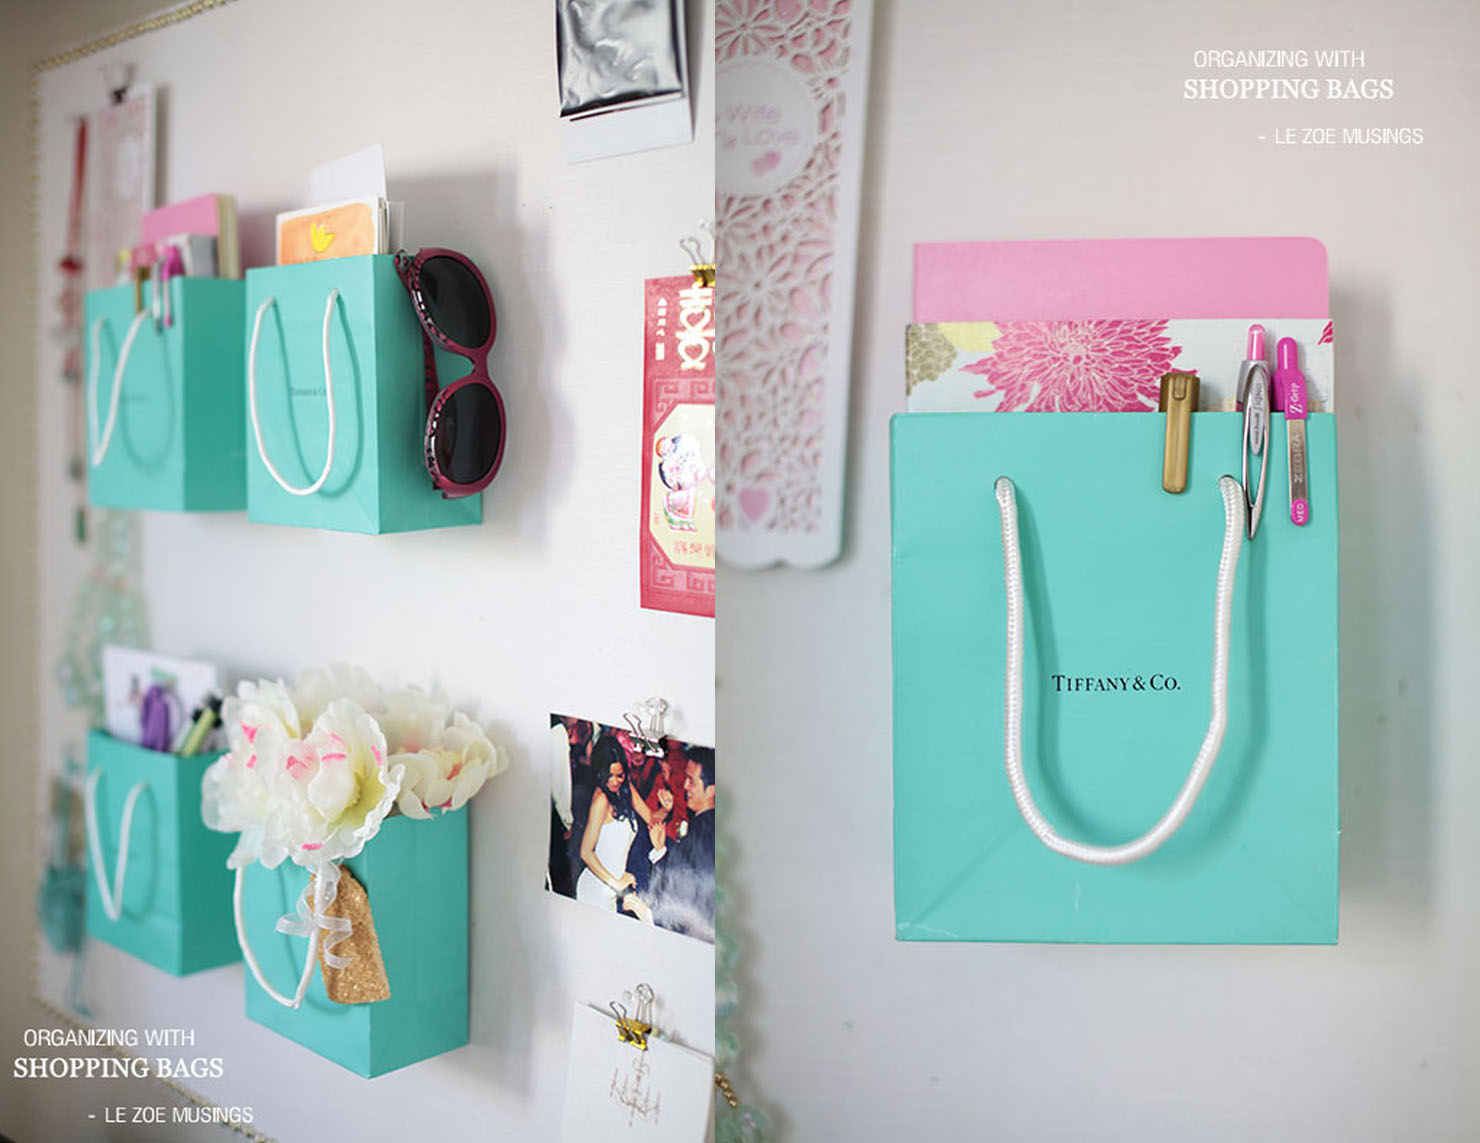 blue Tiffany bags on a wall.